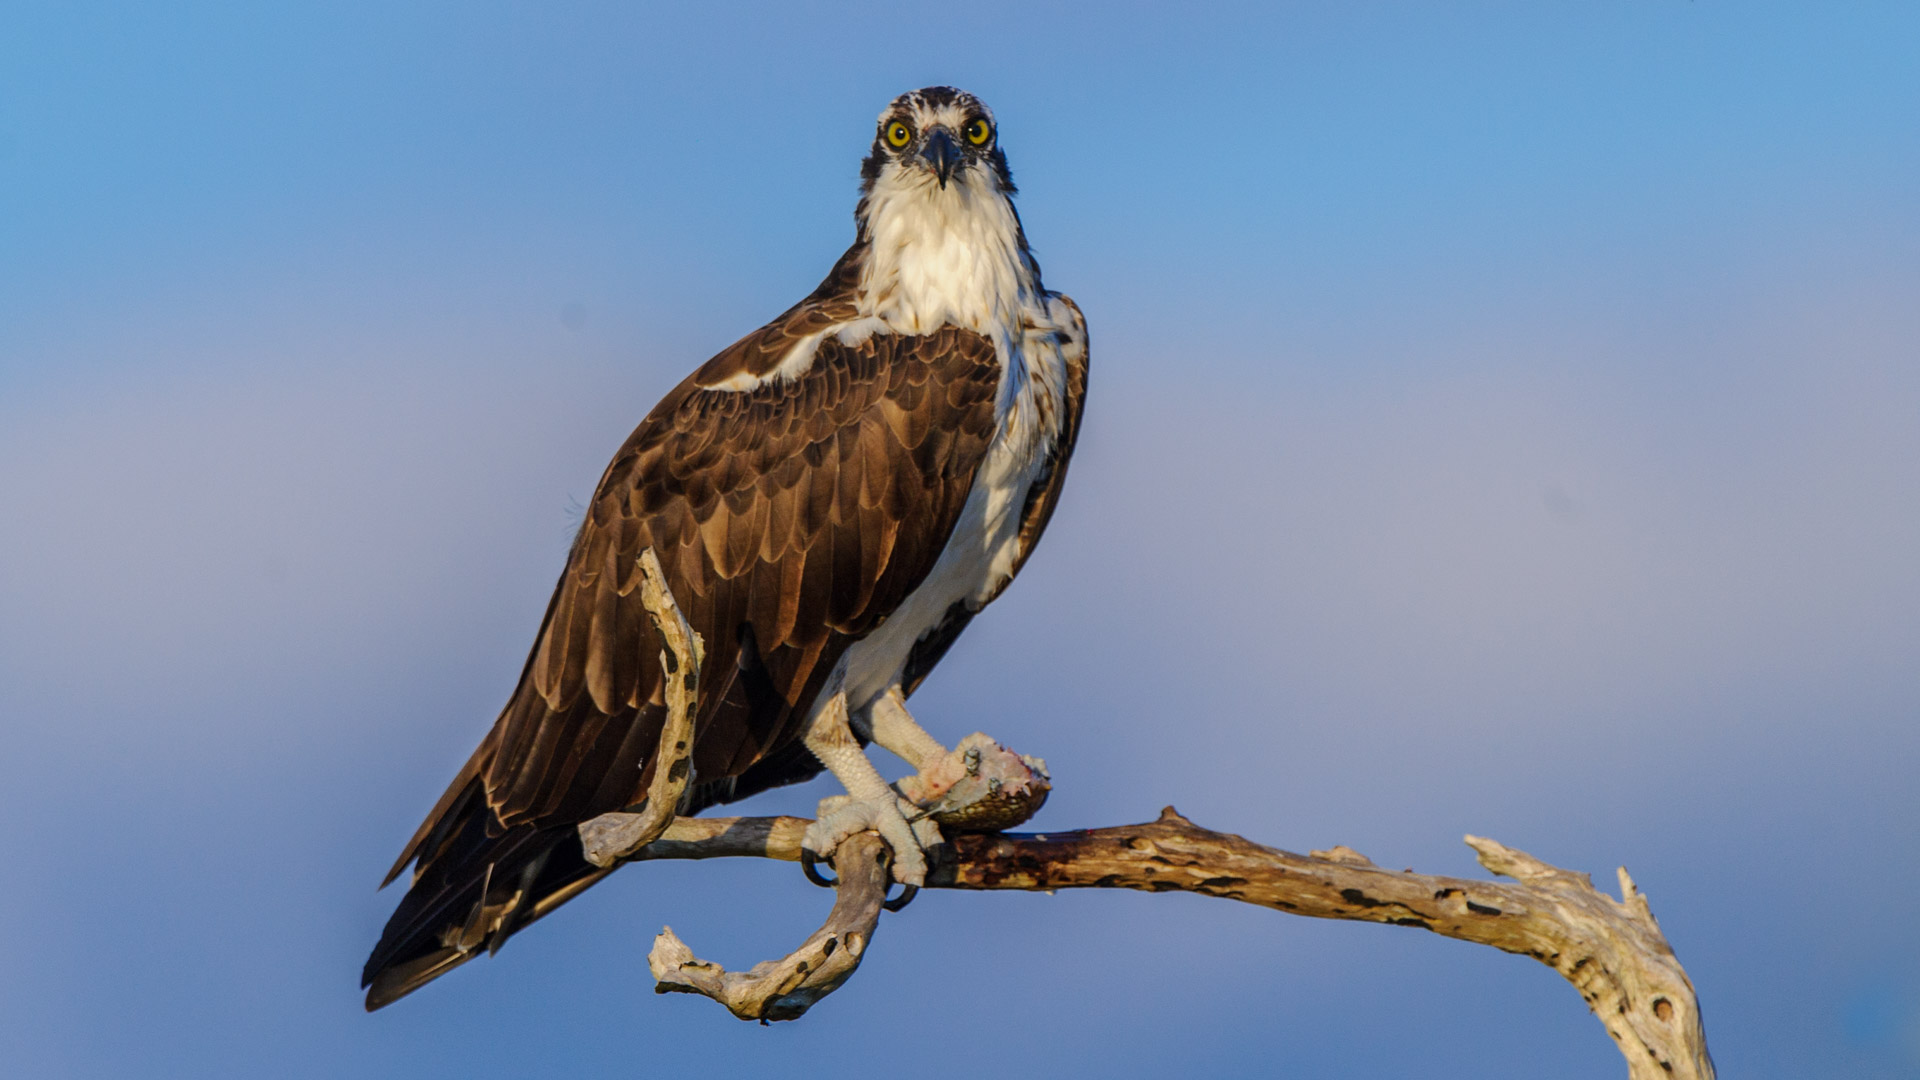 Osprey looking photographer